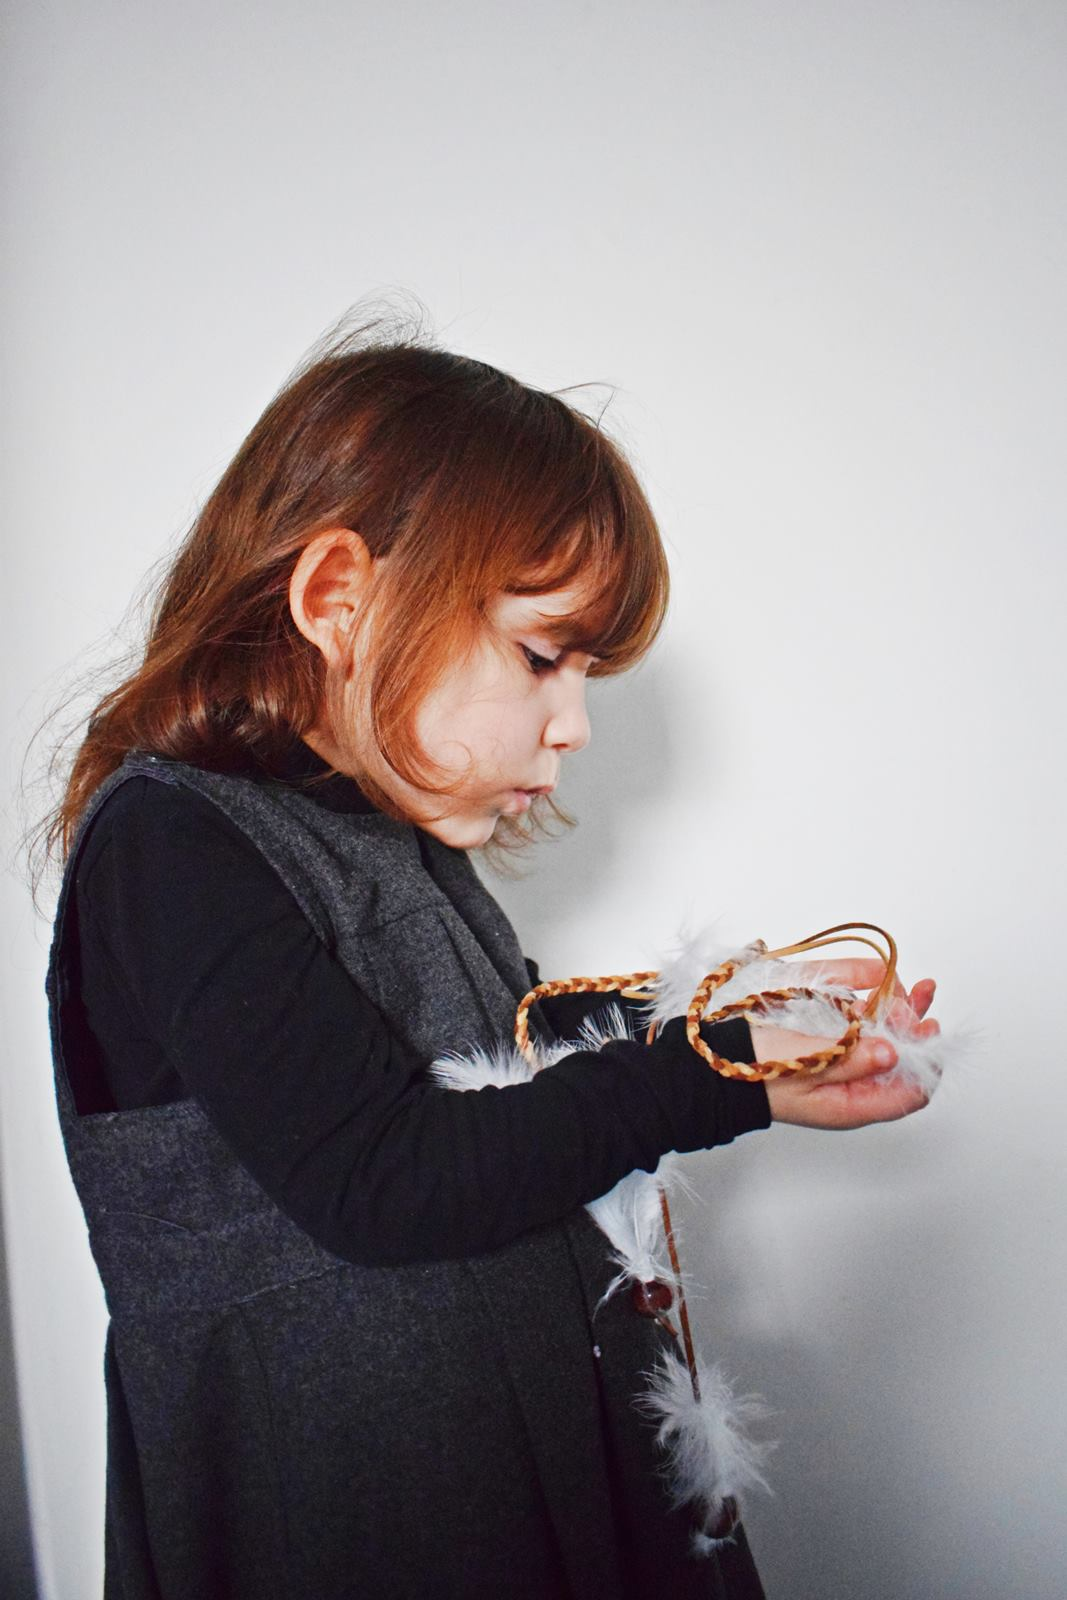 Diy couronne de plumes et de perles our little family le blog 6 bis